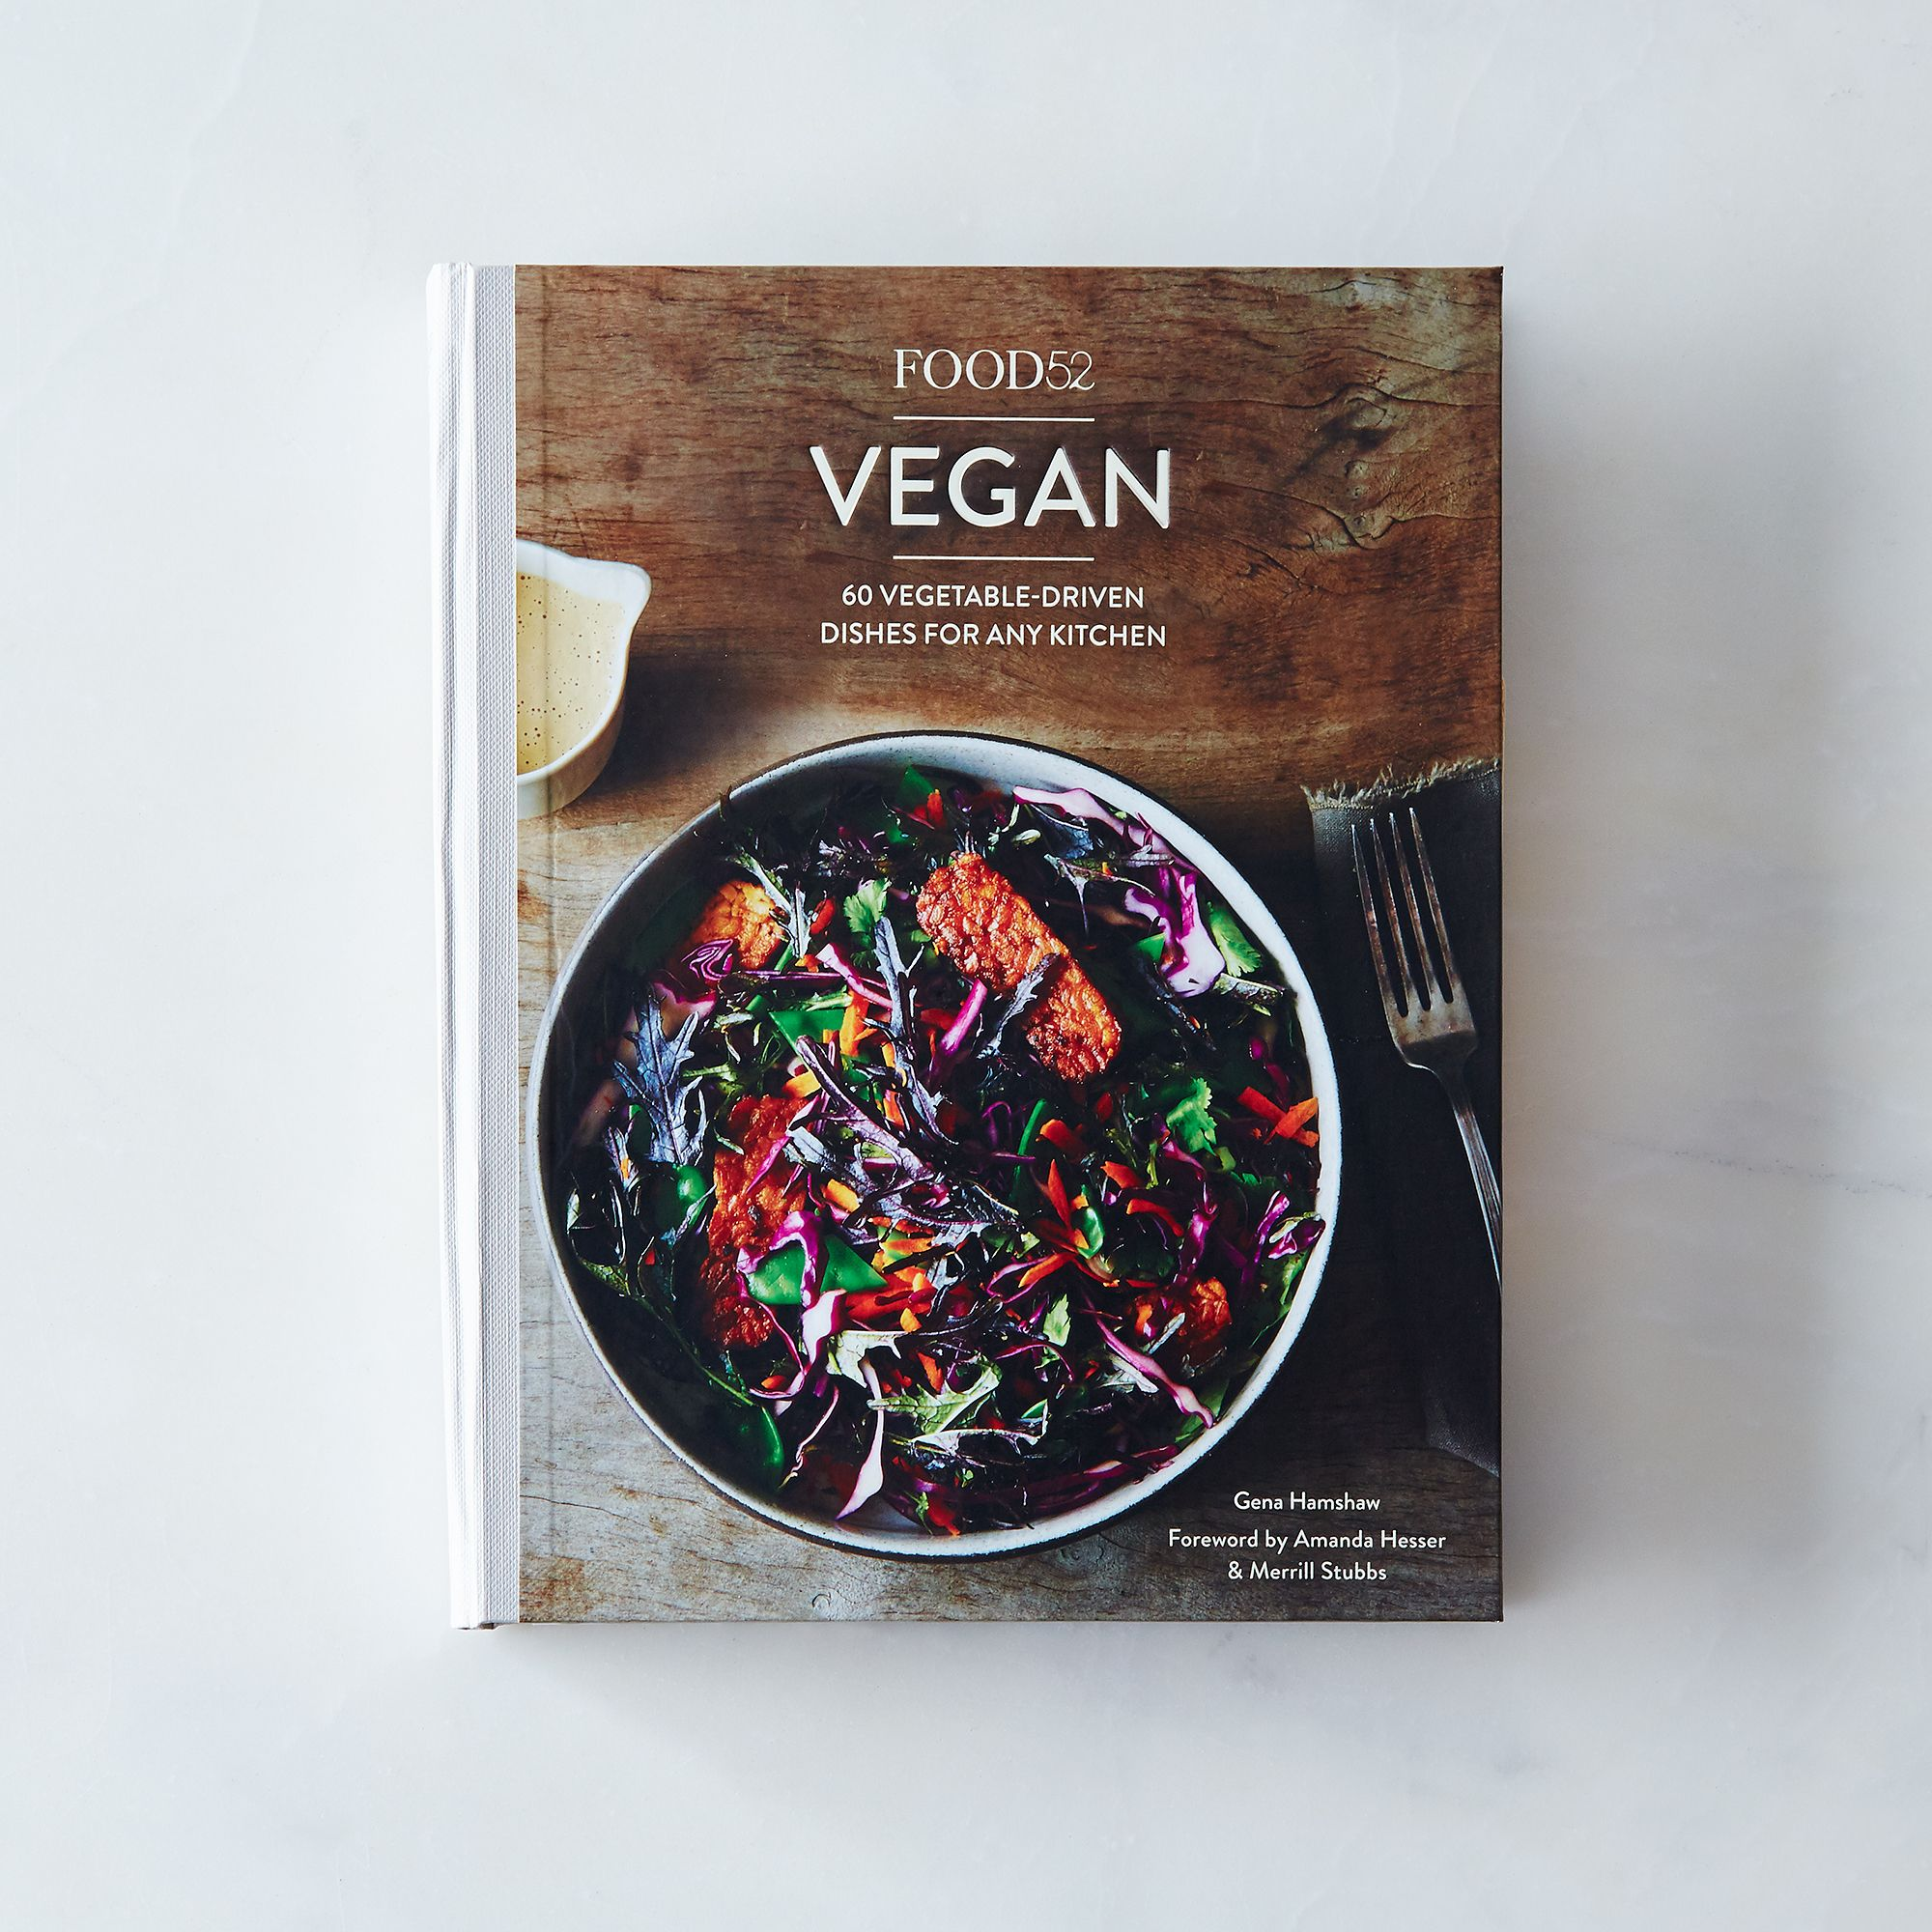 Signed Copy: Food52 Vegan Cookbook - Vegan